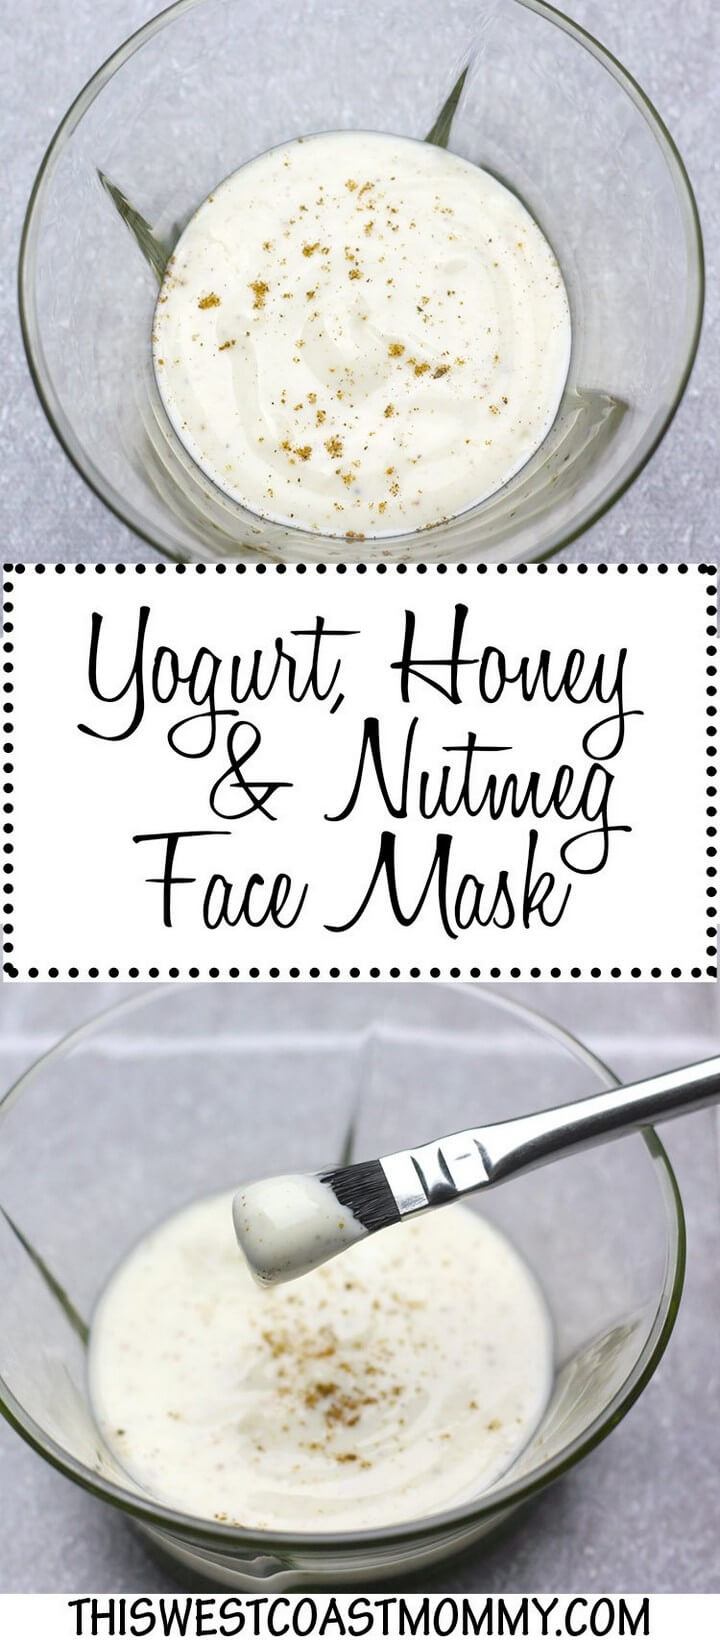 DIY Yogurt Honey and Nutmeg Face Mask